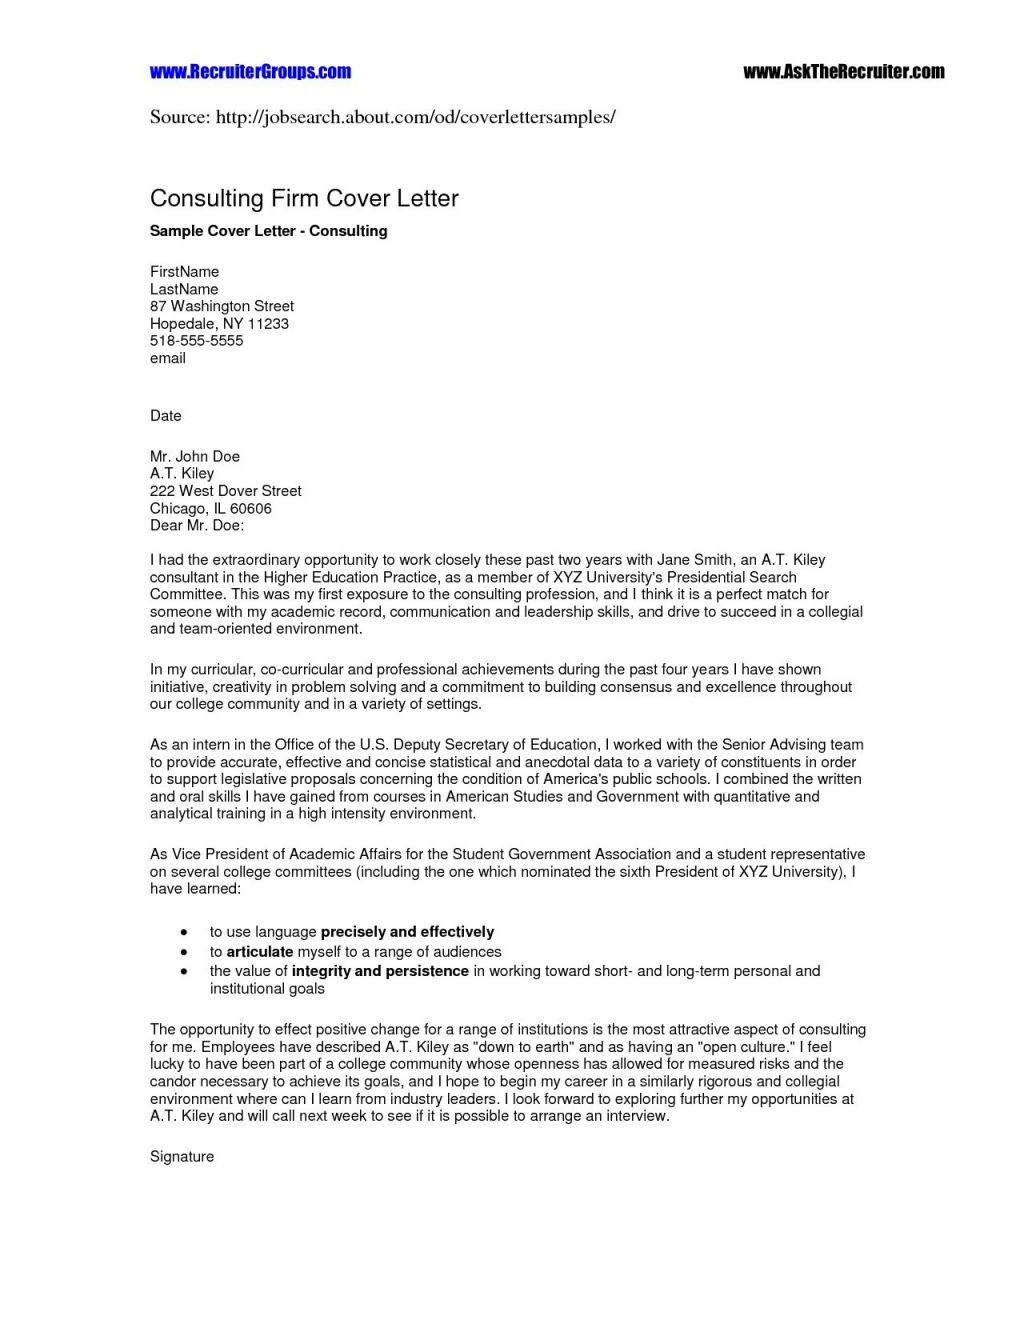 Letter Of Engagement Template Contractor - Relatively Sample Consulting Engagement Letter Bc82 – Documentaries